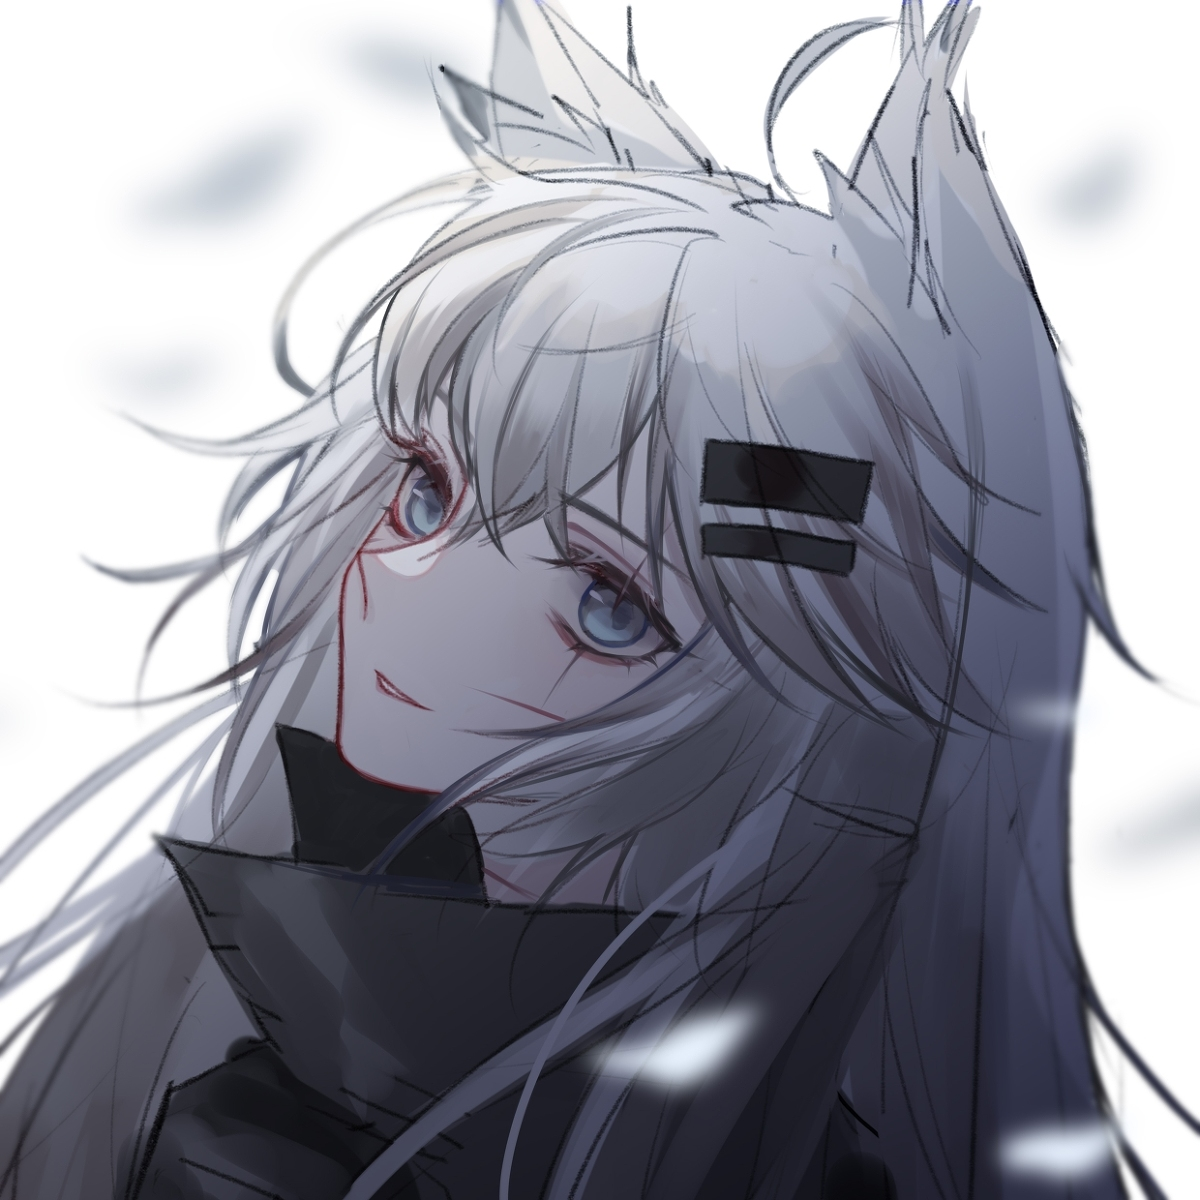 Pin By Kevin Henrique On Lappland Arknights In 2020 Anime Wolf Girl Anime Neko Anime Wolf